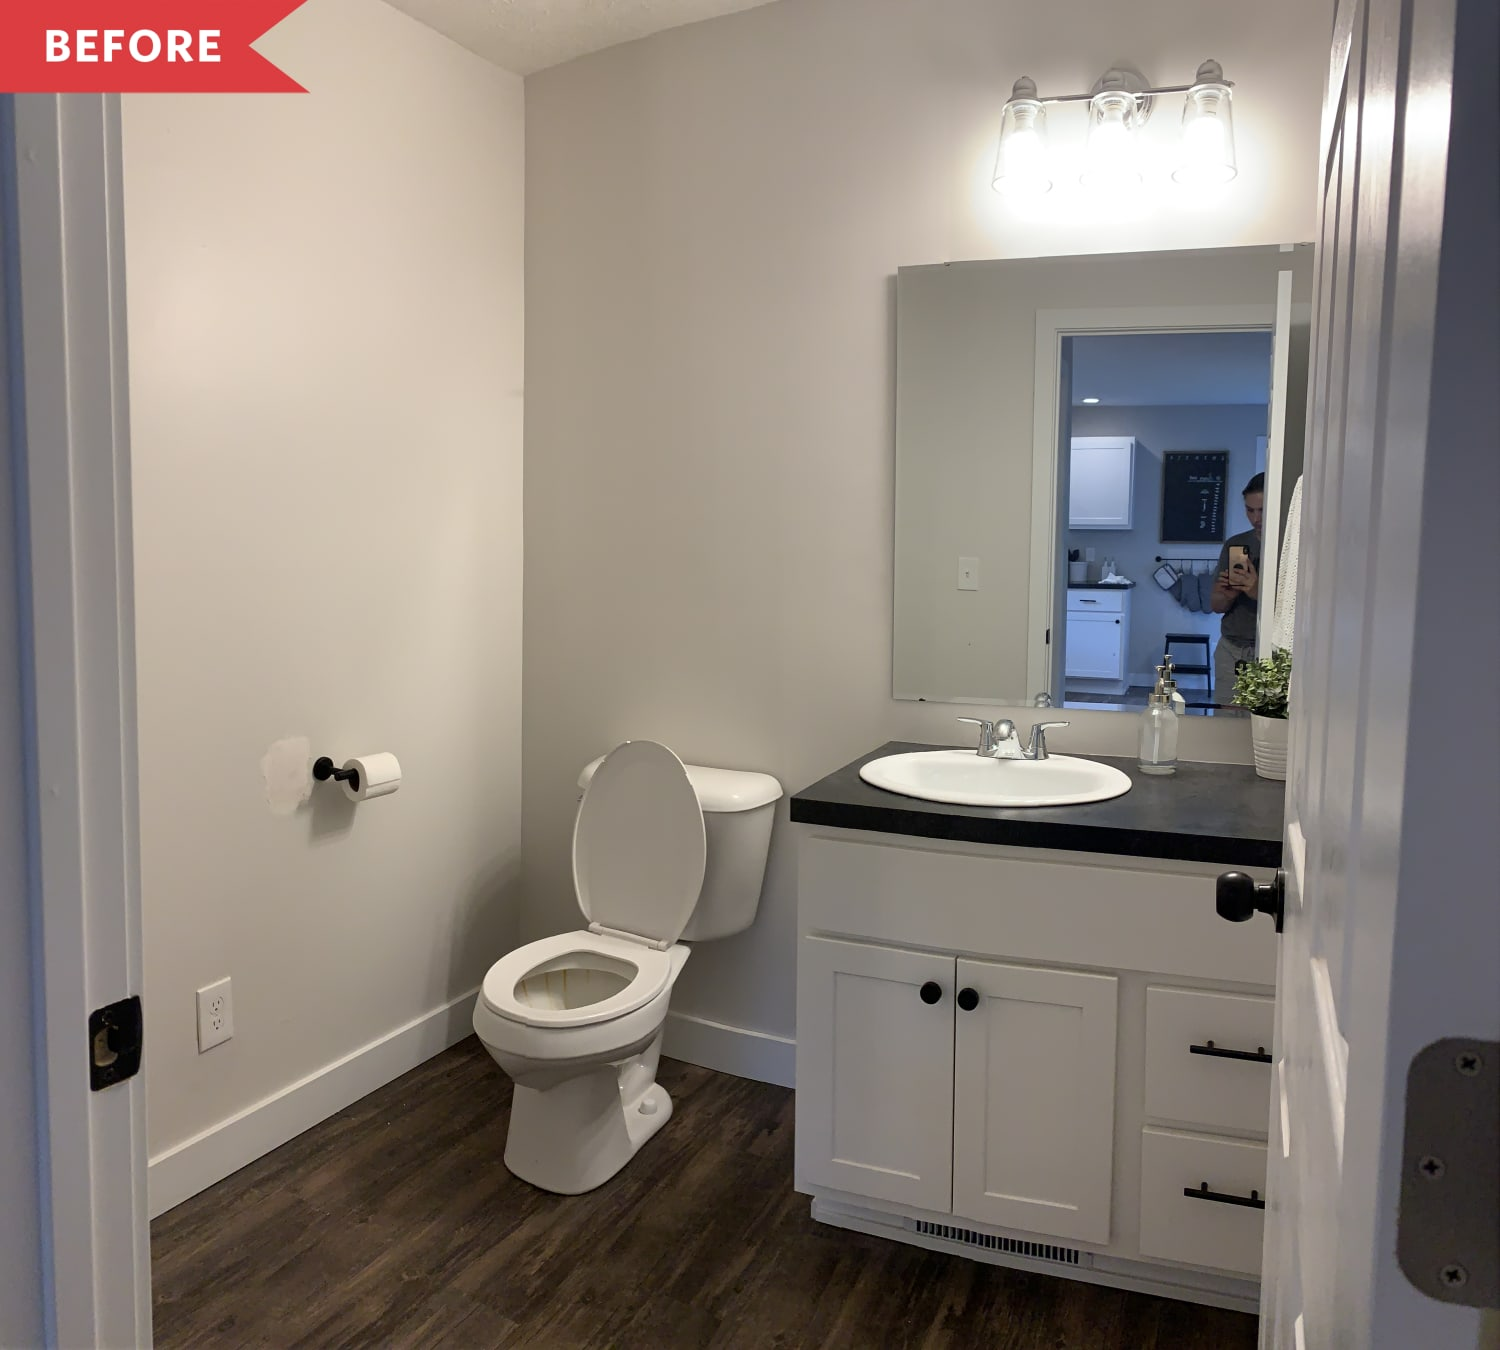 Before and After: A $200 Bathroom Transformation Done in a Weekend